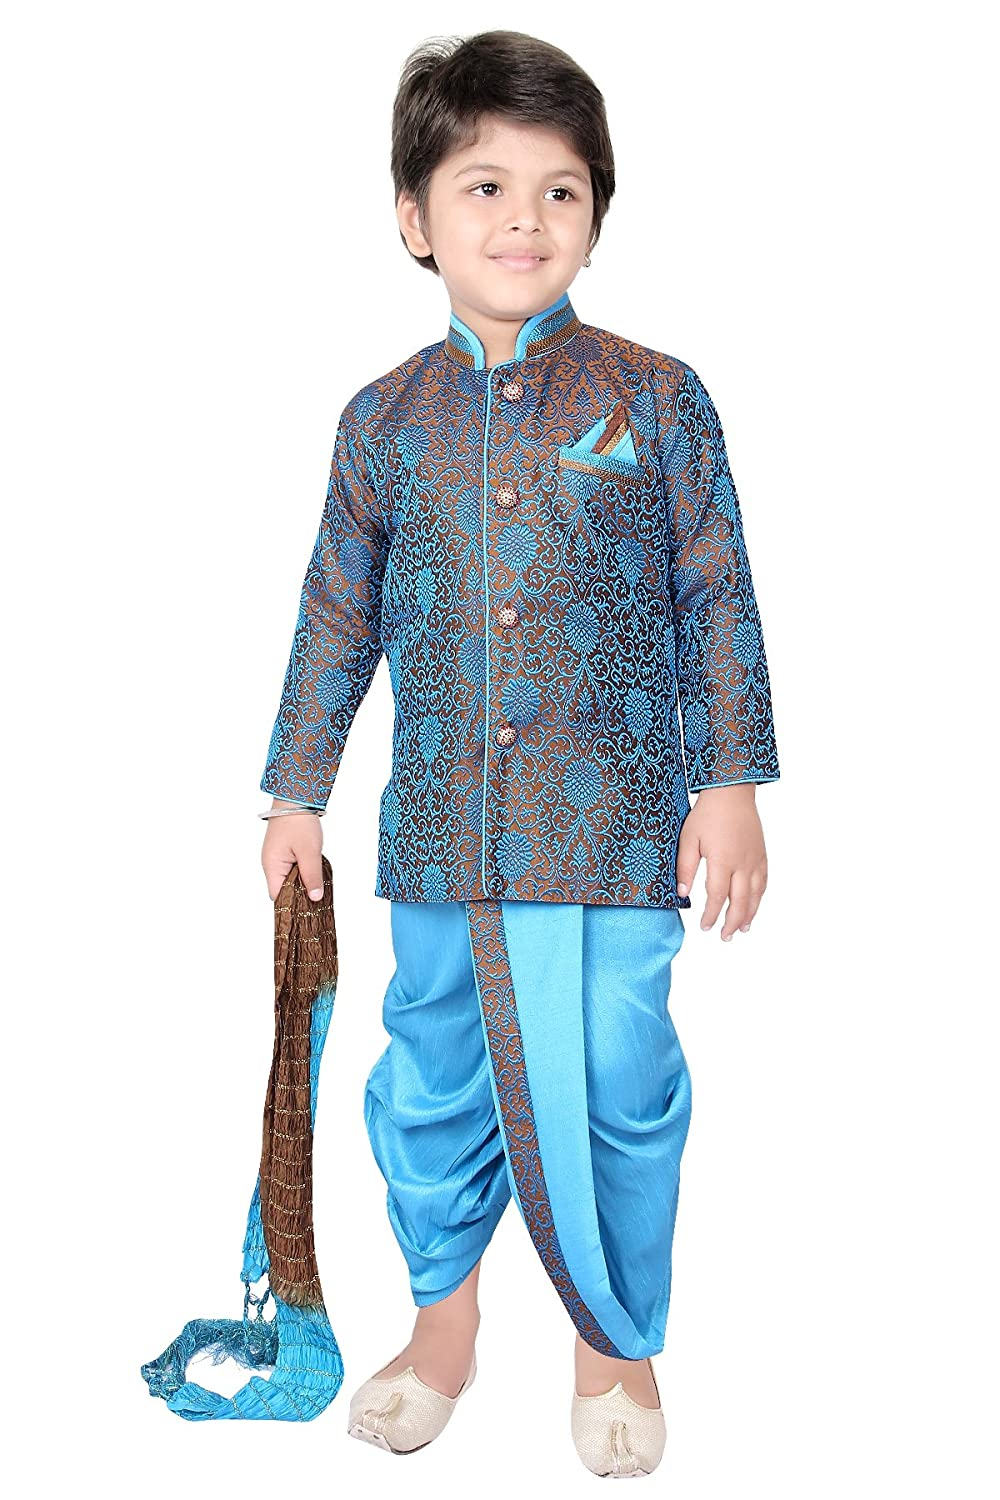 Awesome Party Wear Dresses For Boy Model - All Wedding Dresses ...